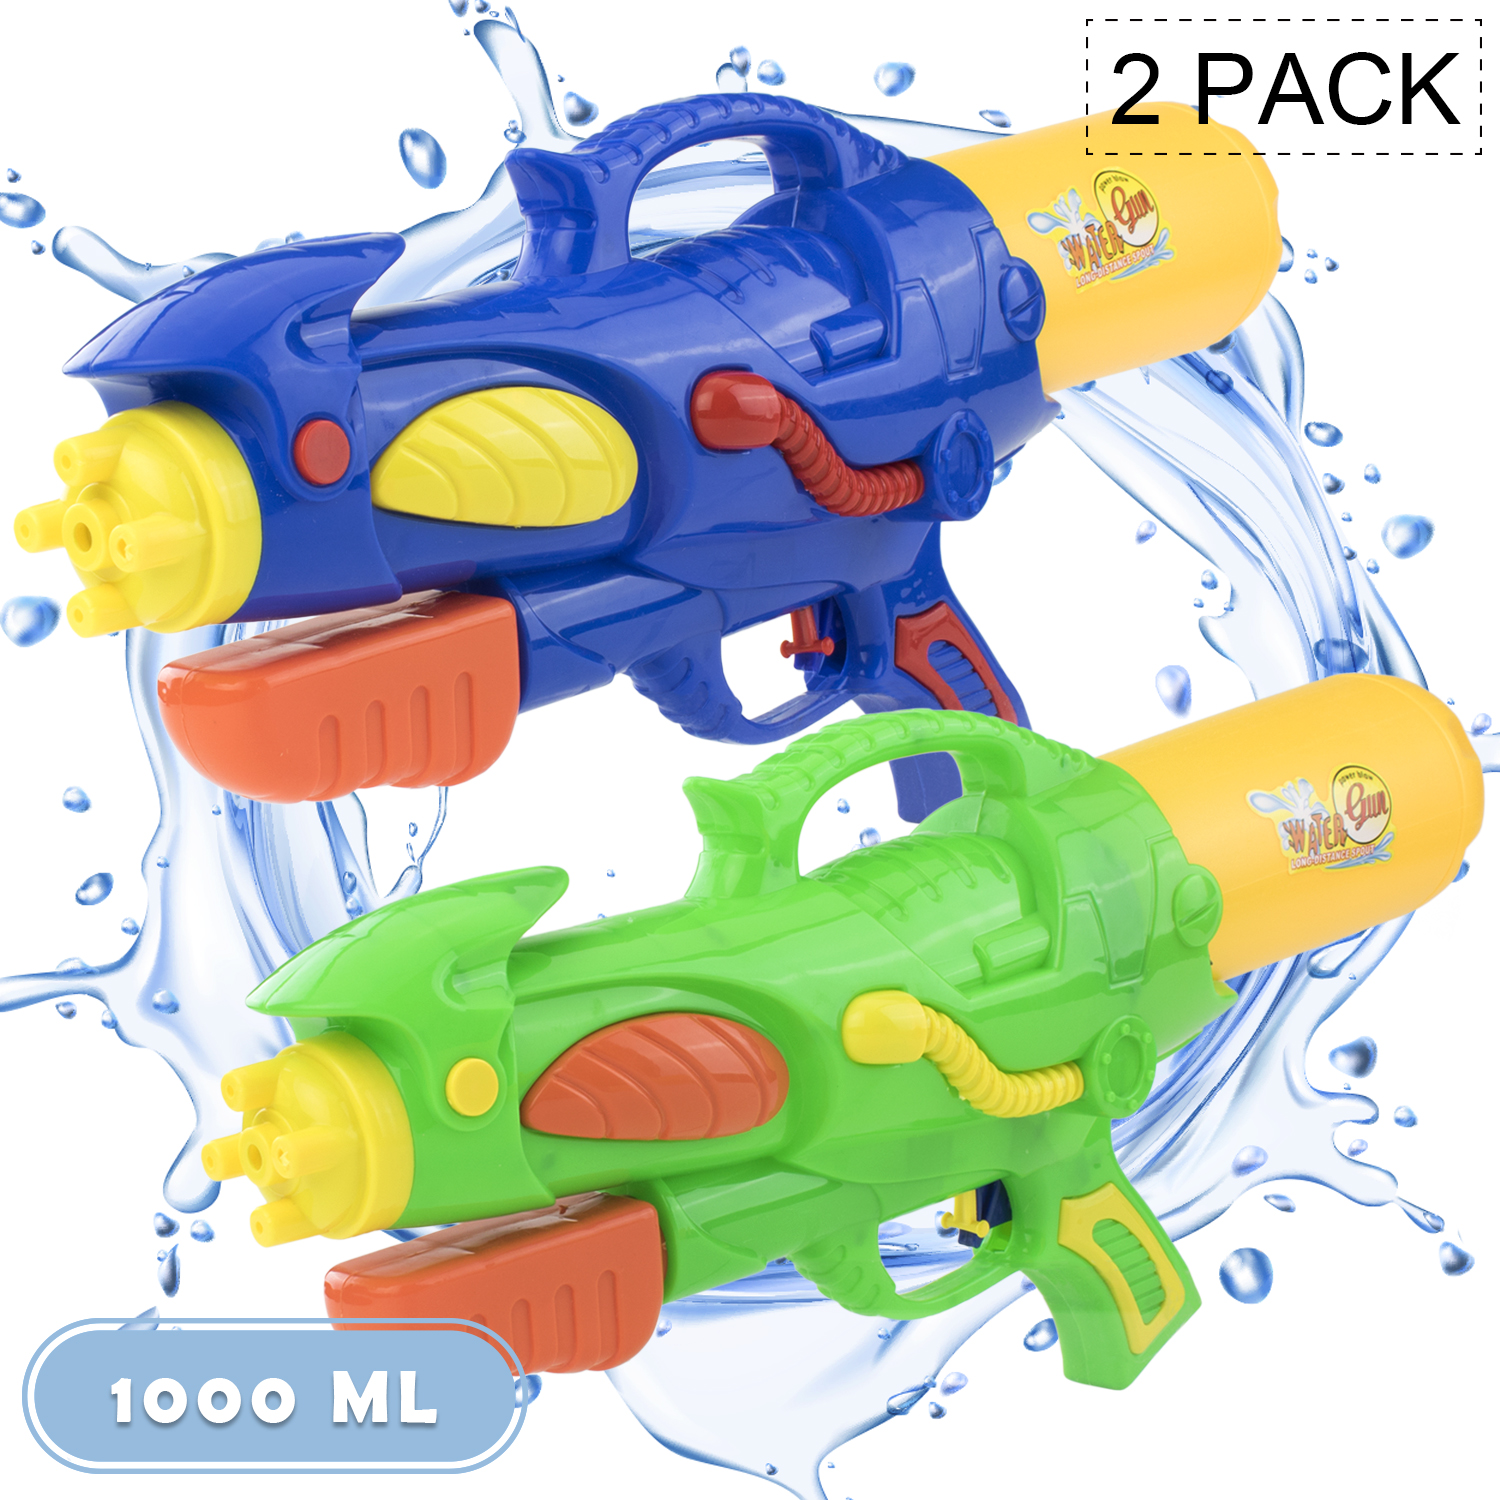 2Pack ,with 2000CC Large Capacity,for Summer Water Fighting Toy Outdoor Pool Beach Yard Adults Swimming Party Water Shooter Fighting Games Water Guns Water Blaster Squirt Guns Blaster Soaker for Kids